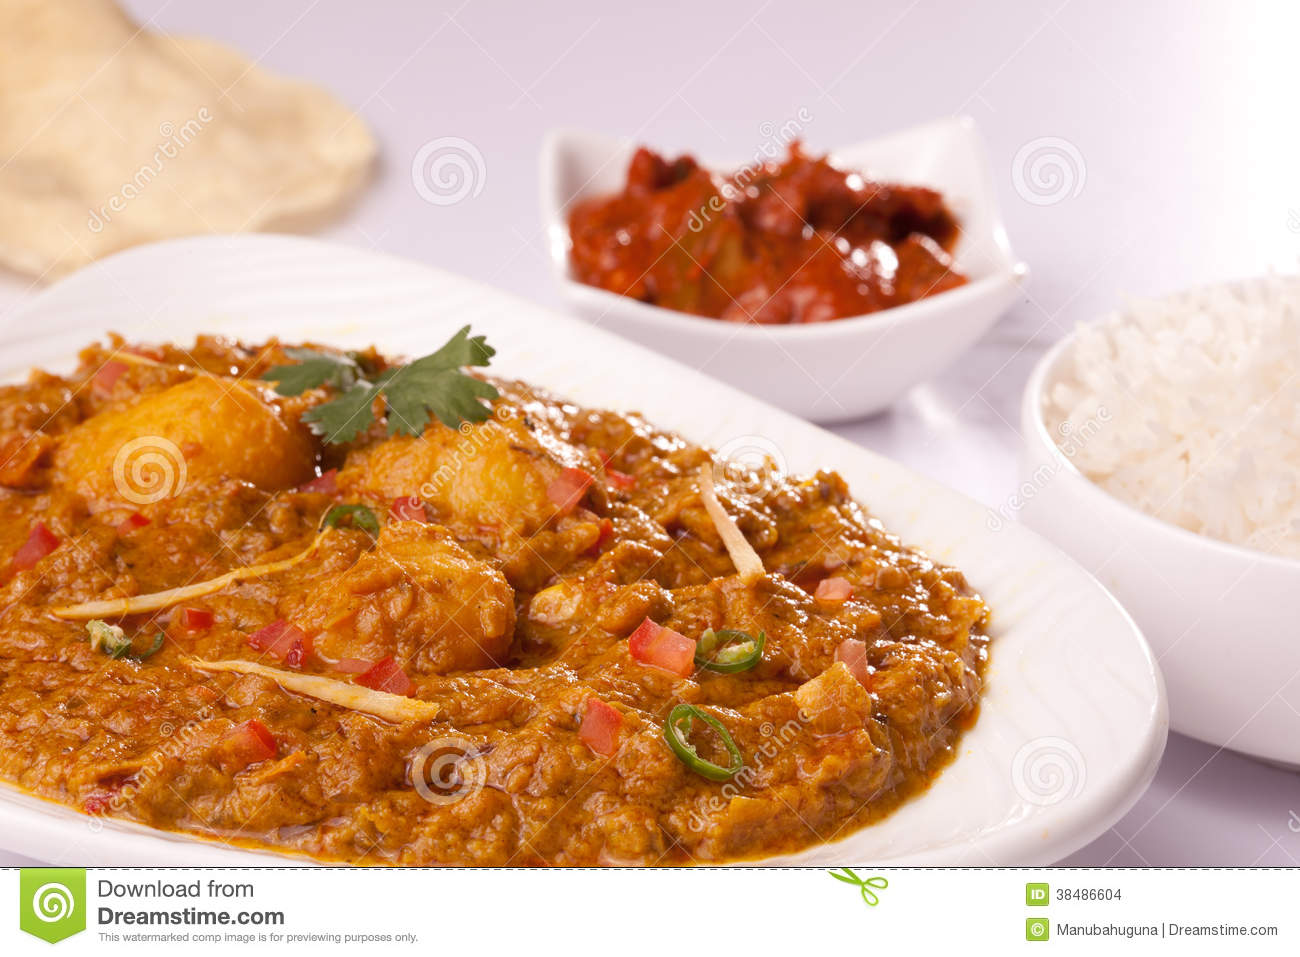 dum-aloo-spicy-indian-potato-curry-hot-made-potatoes-cooked-masala ...